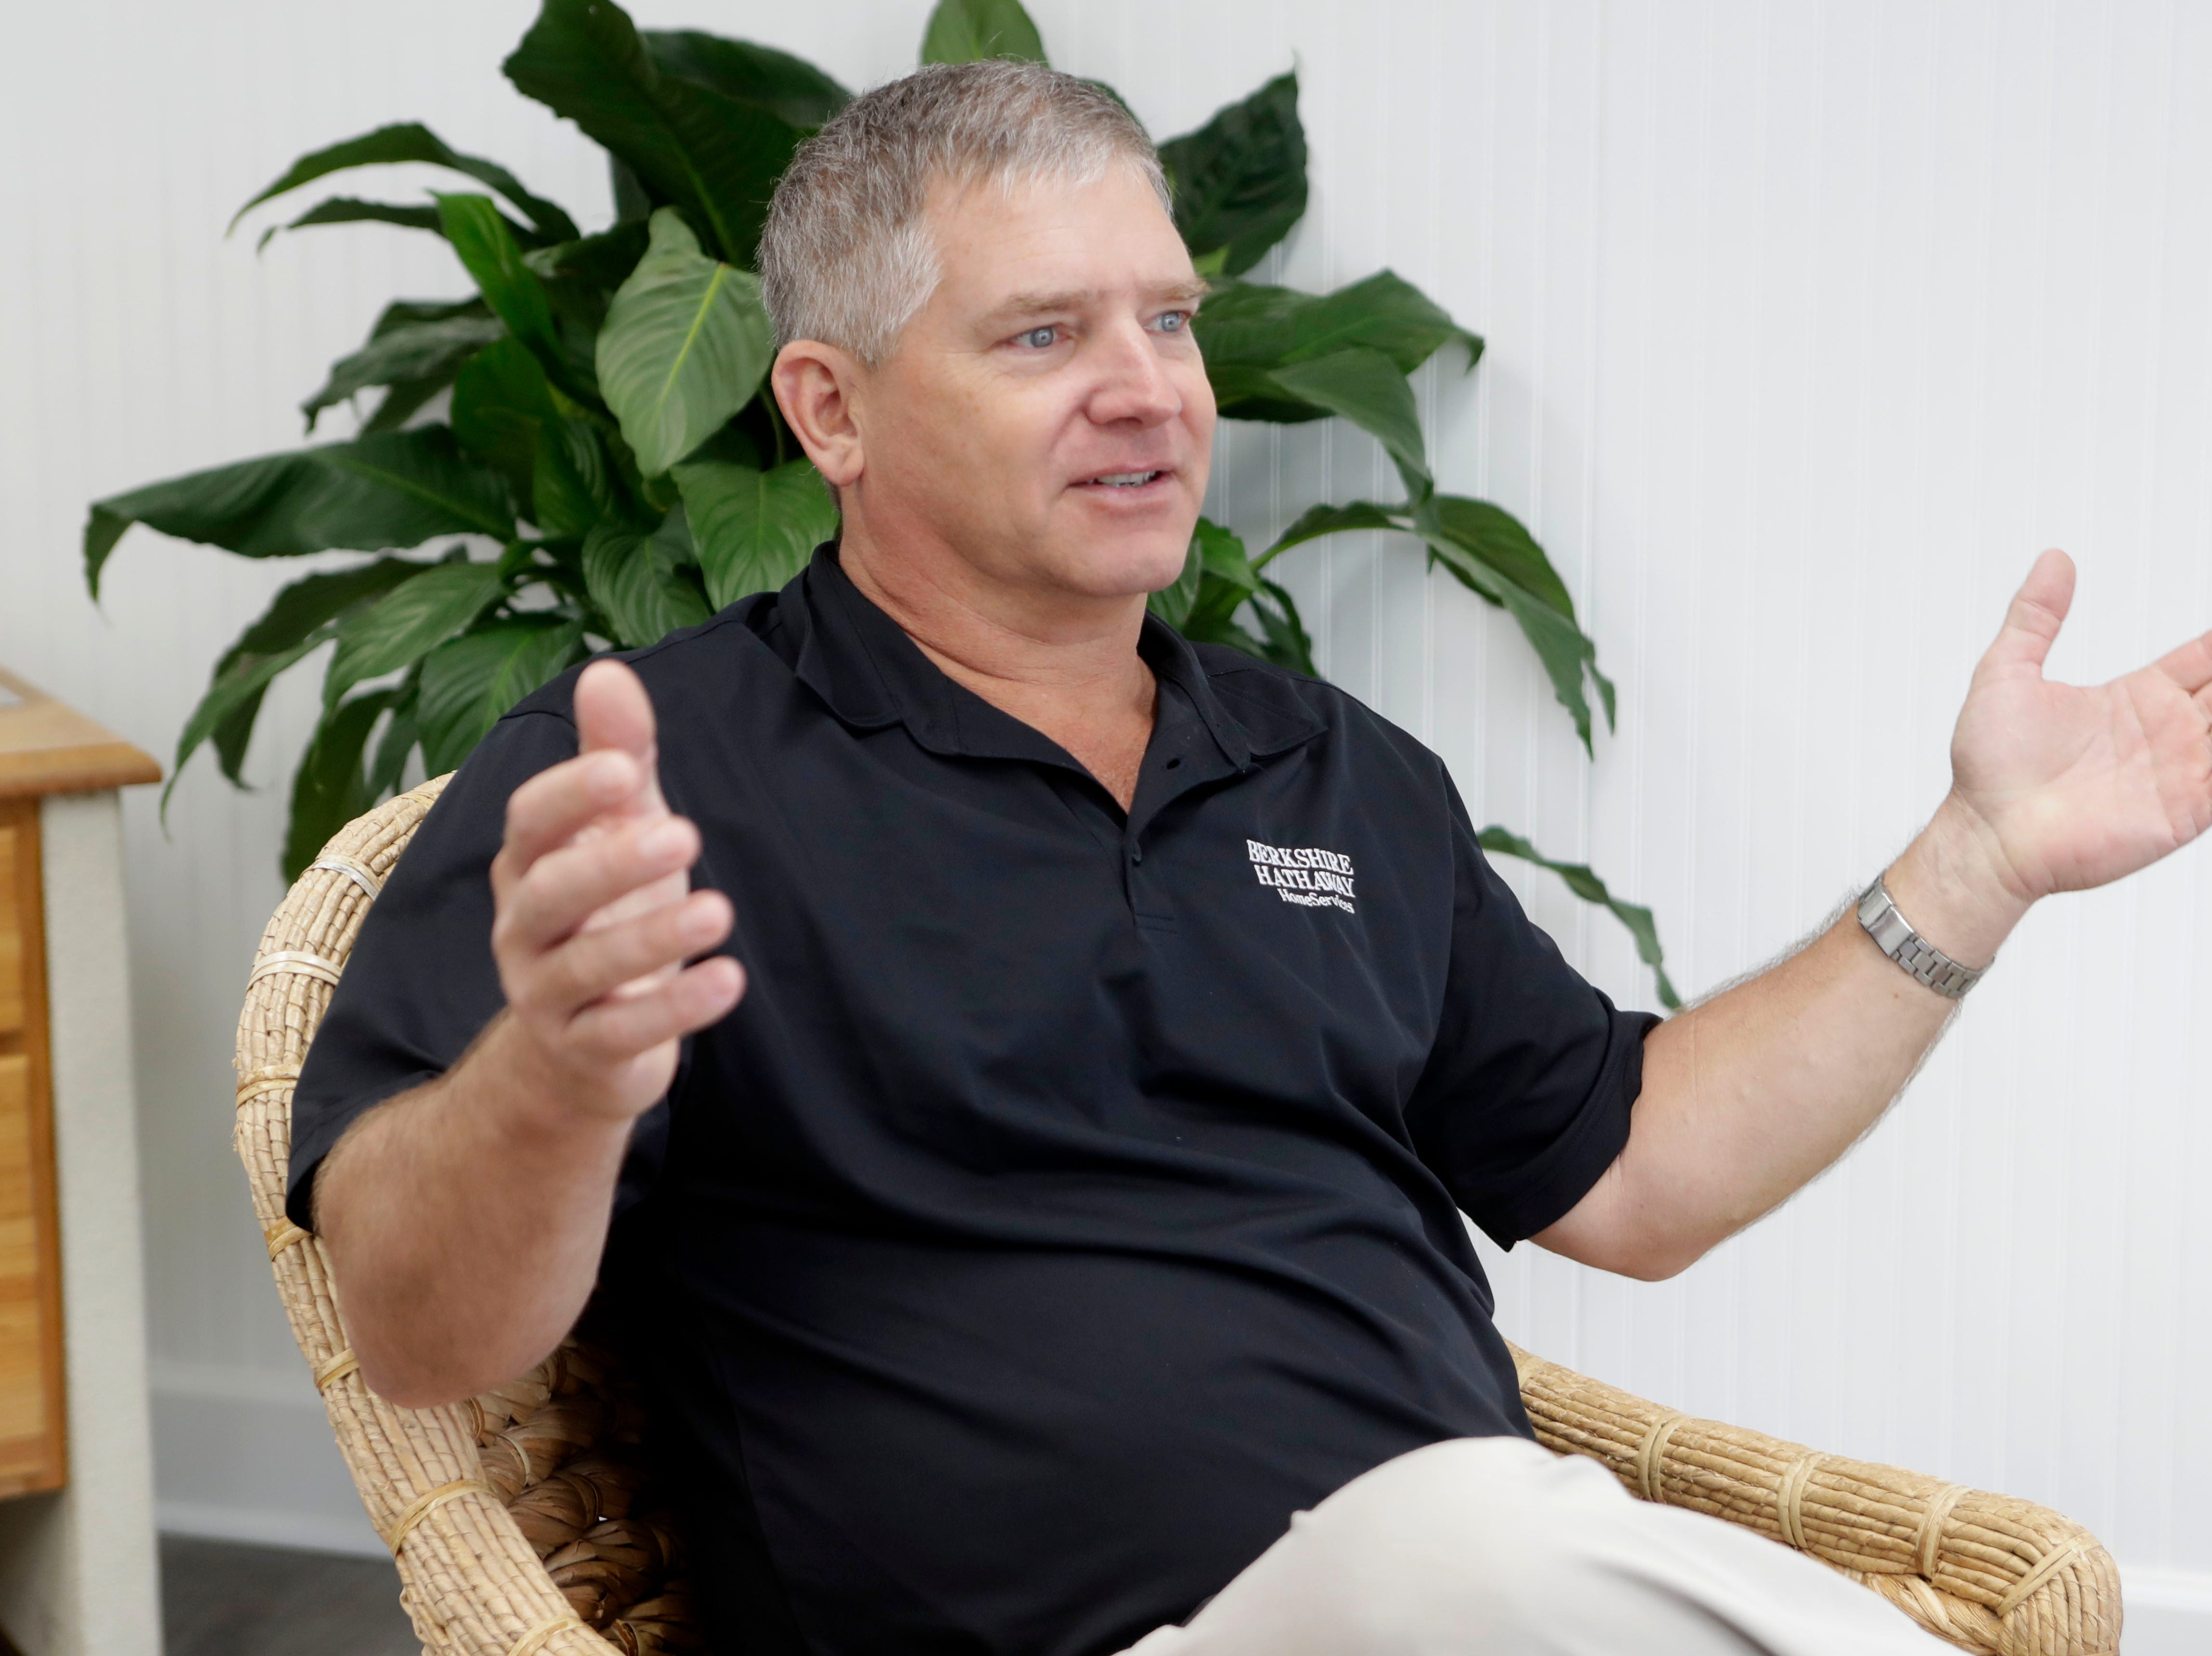 Grayson Shepard, a realtor with Berkshire Hawthaway Home Services on St. George Island, Fla., talks about the annual chill cook off and how they have more competitors registered than in previous years, Tuesday Feb. 19, 2019.